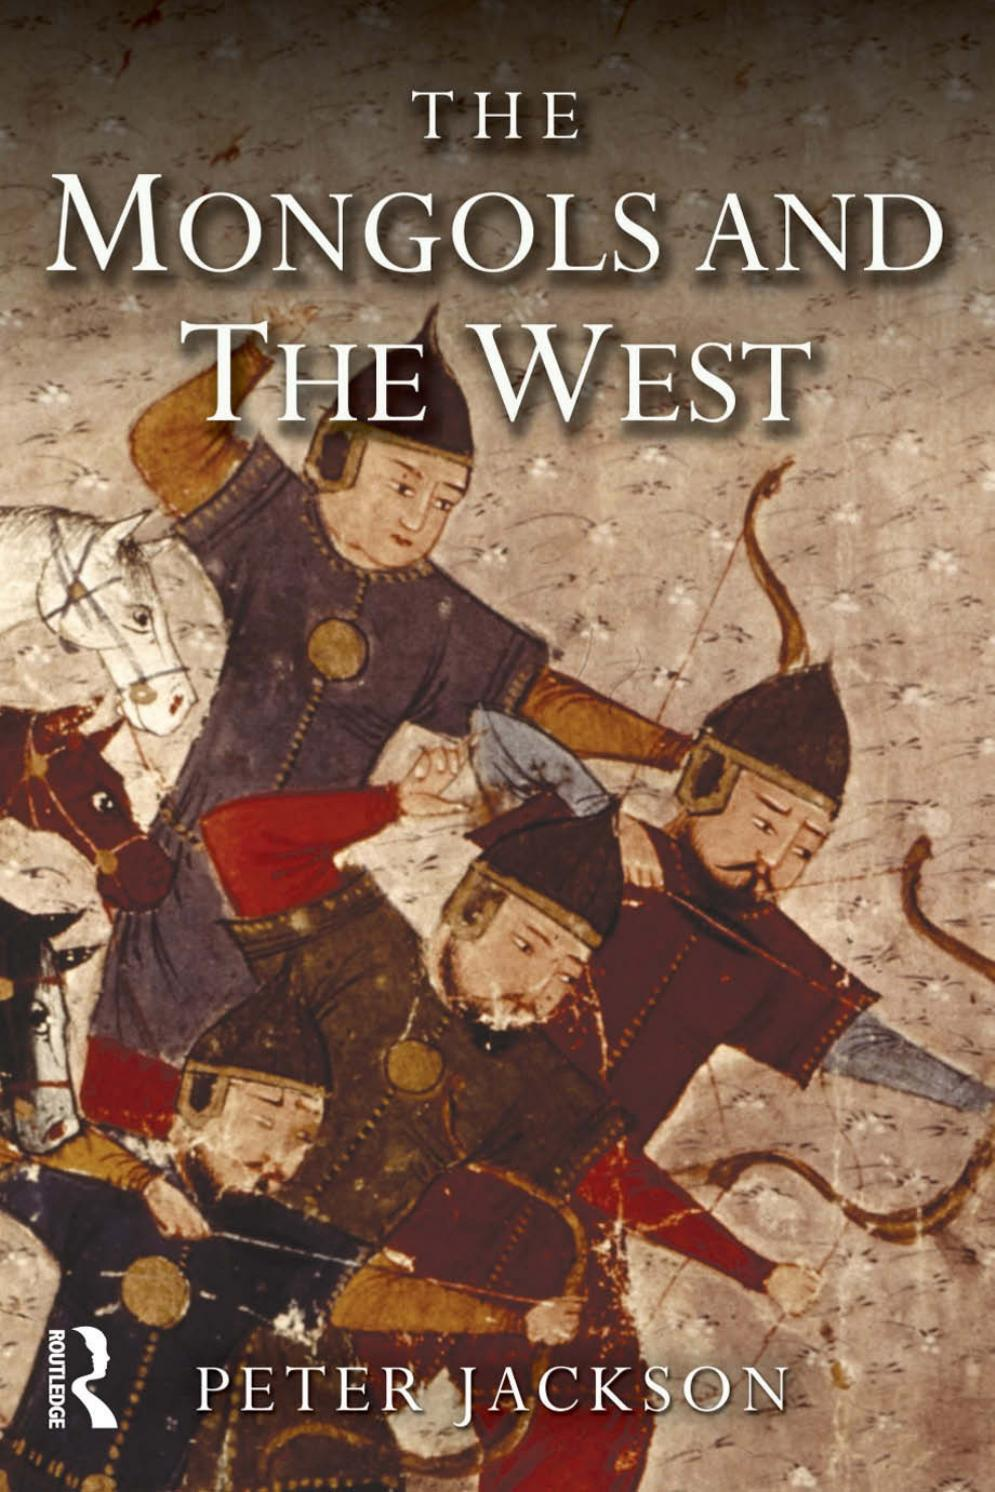 The Mongols And The West 1221 1410 Peter Jackson 2005 By 김형률 Issuu